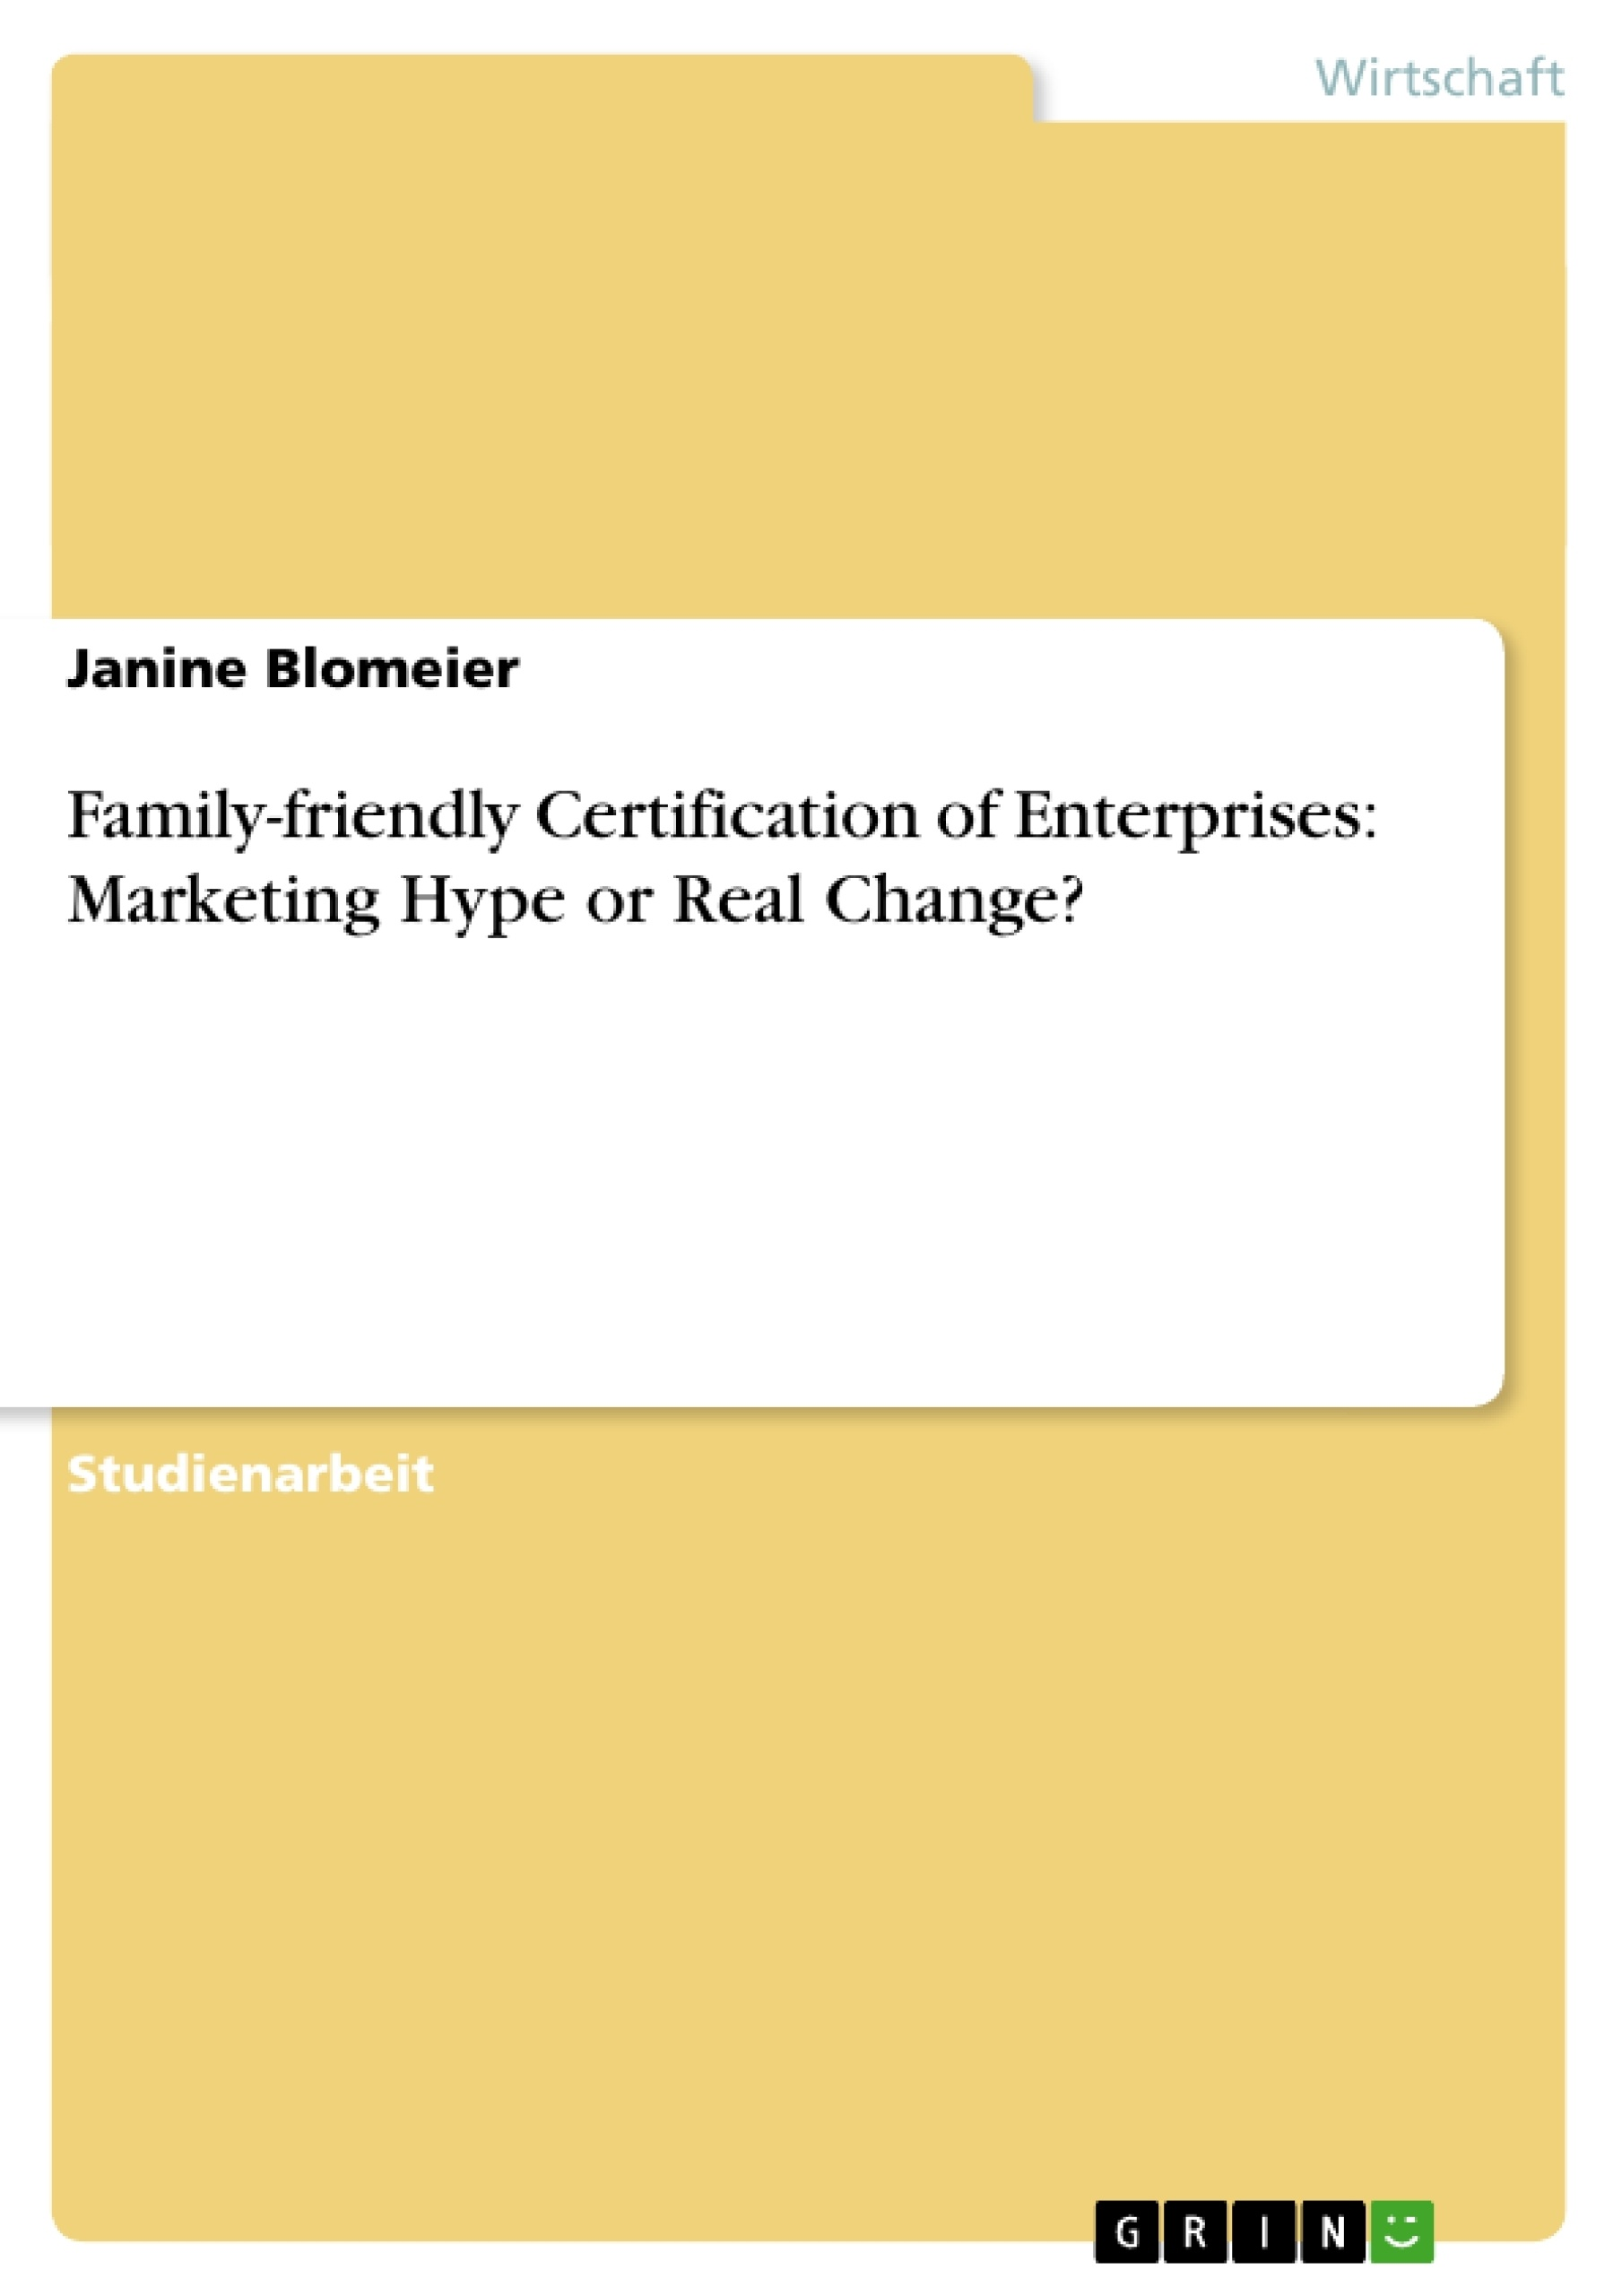 Titel: Family-friendly Certification of Enterprises: Marketing Hype or Real Change?